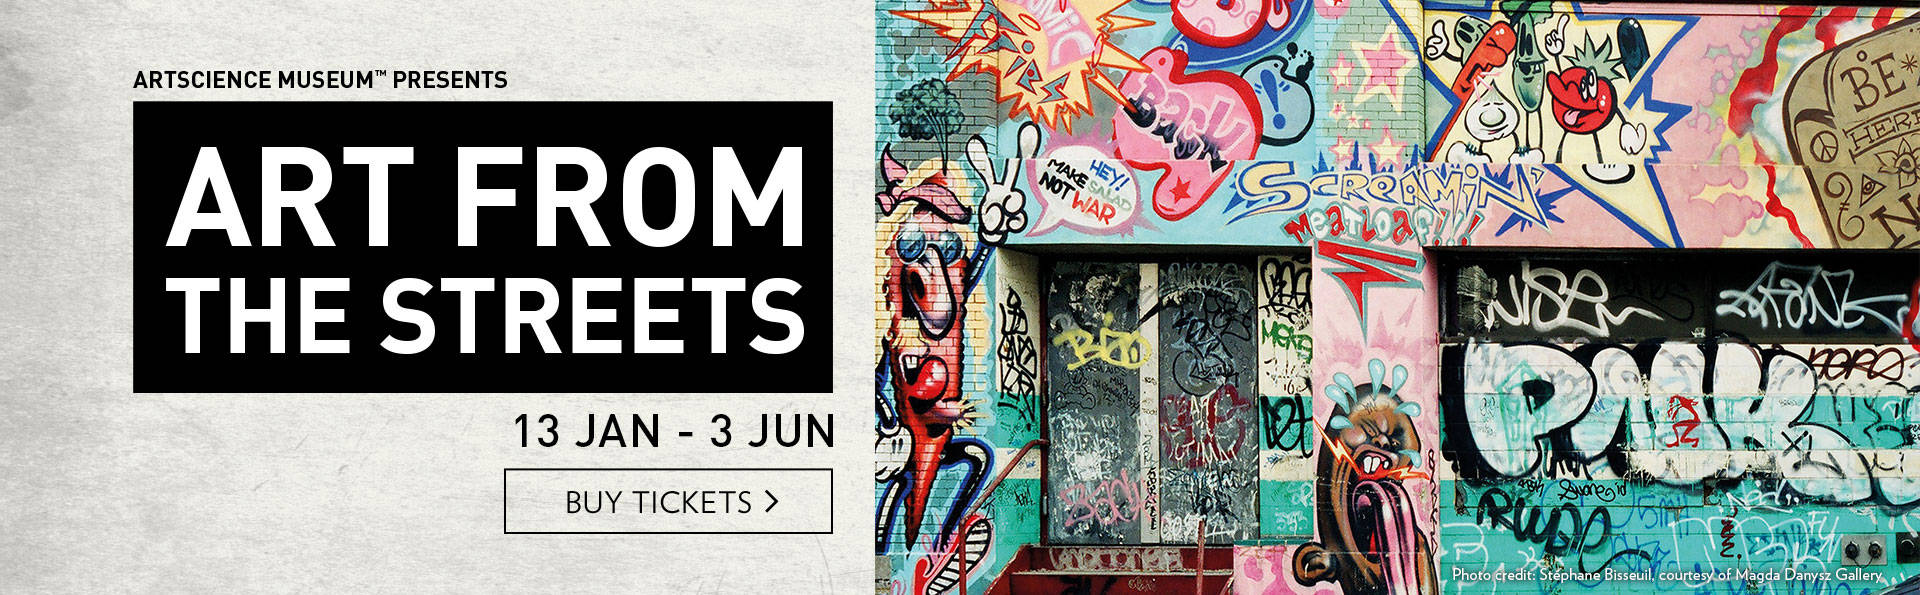 World's most iconic street artists present their provocative works for the first time in Southeast Asia.